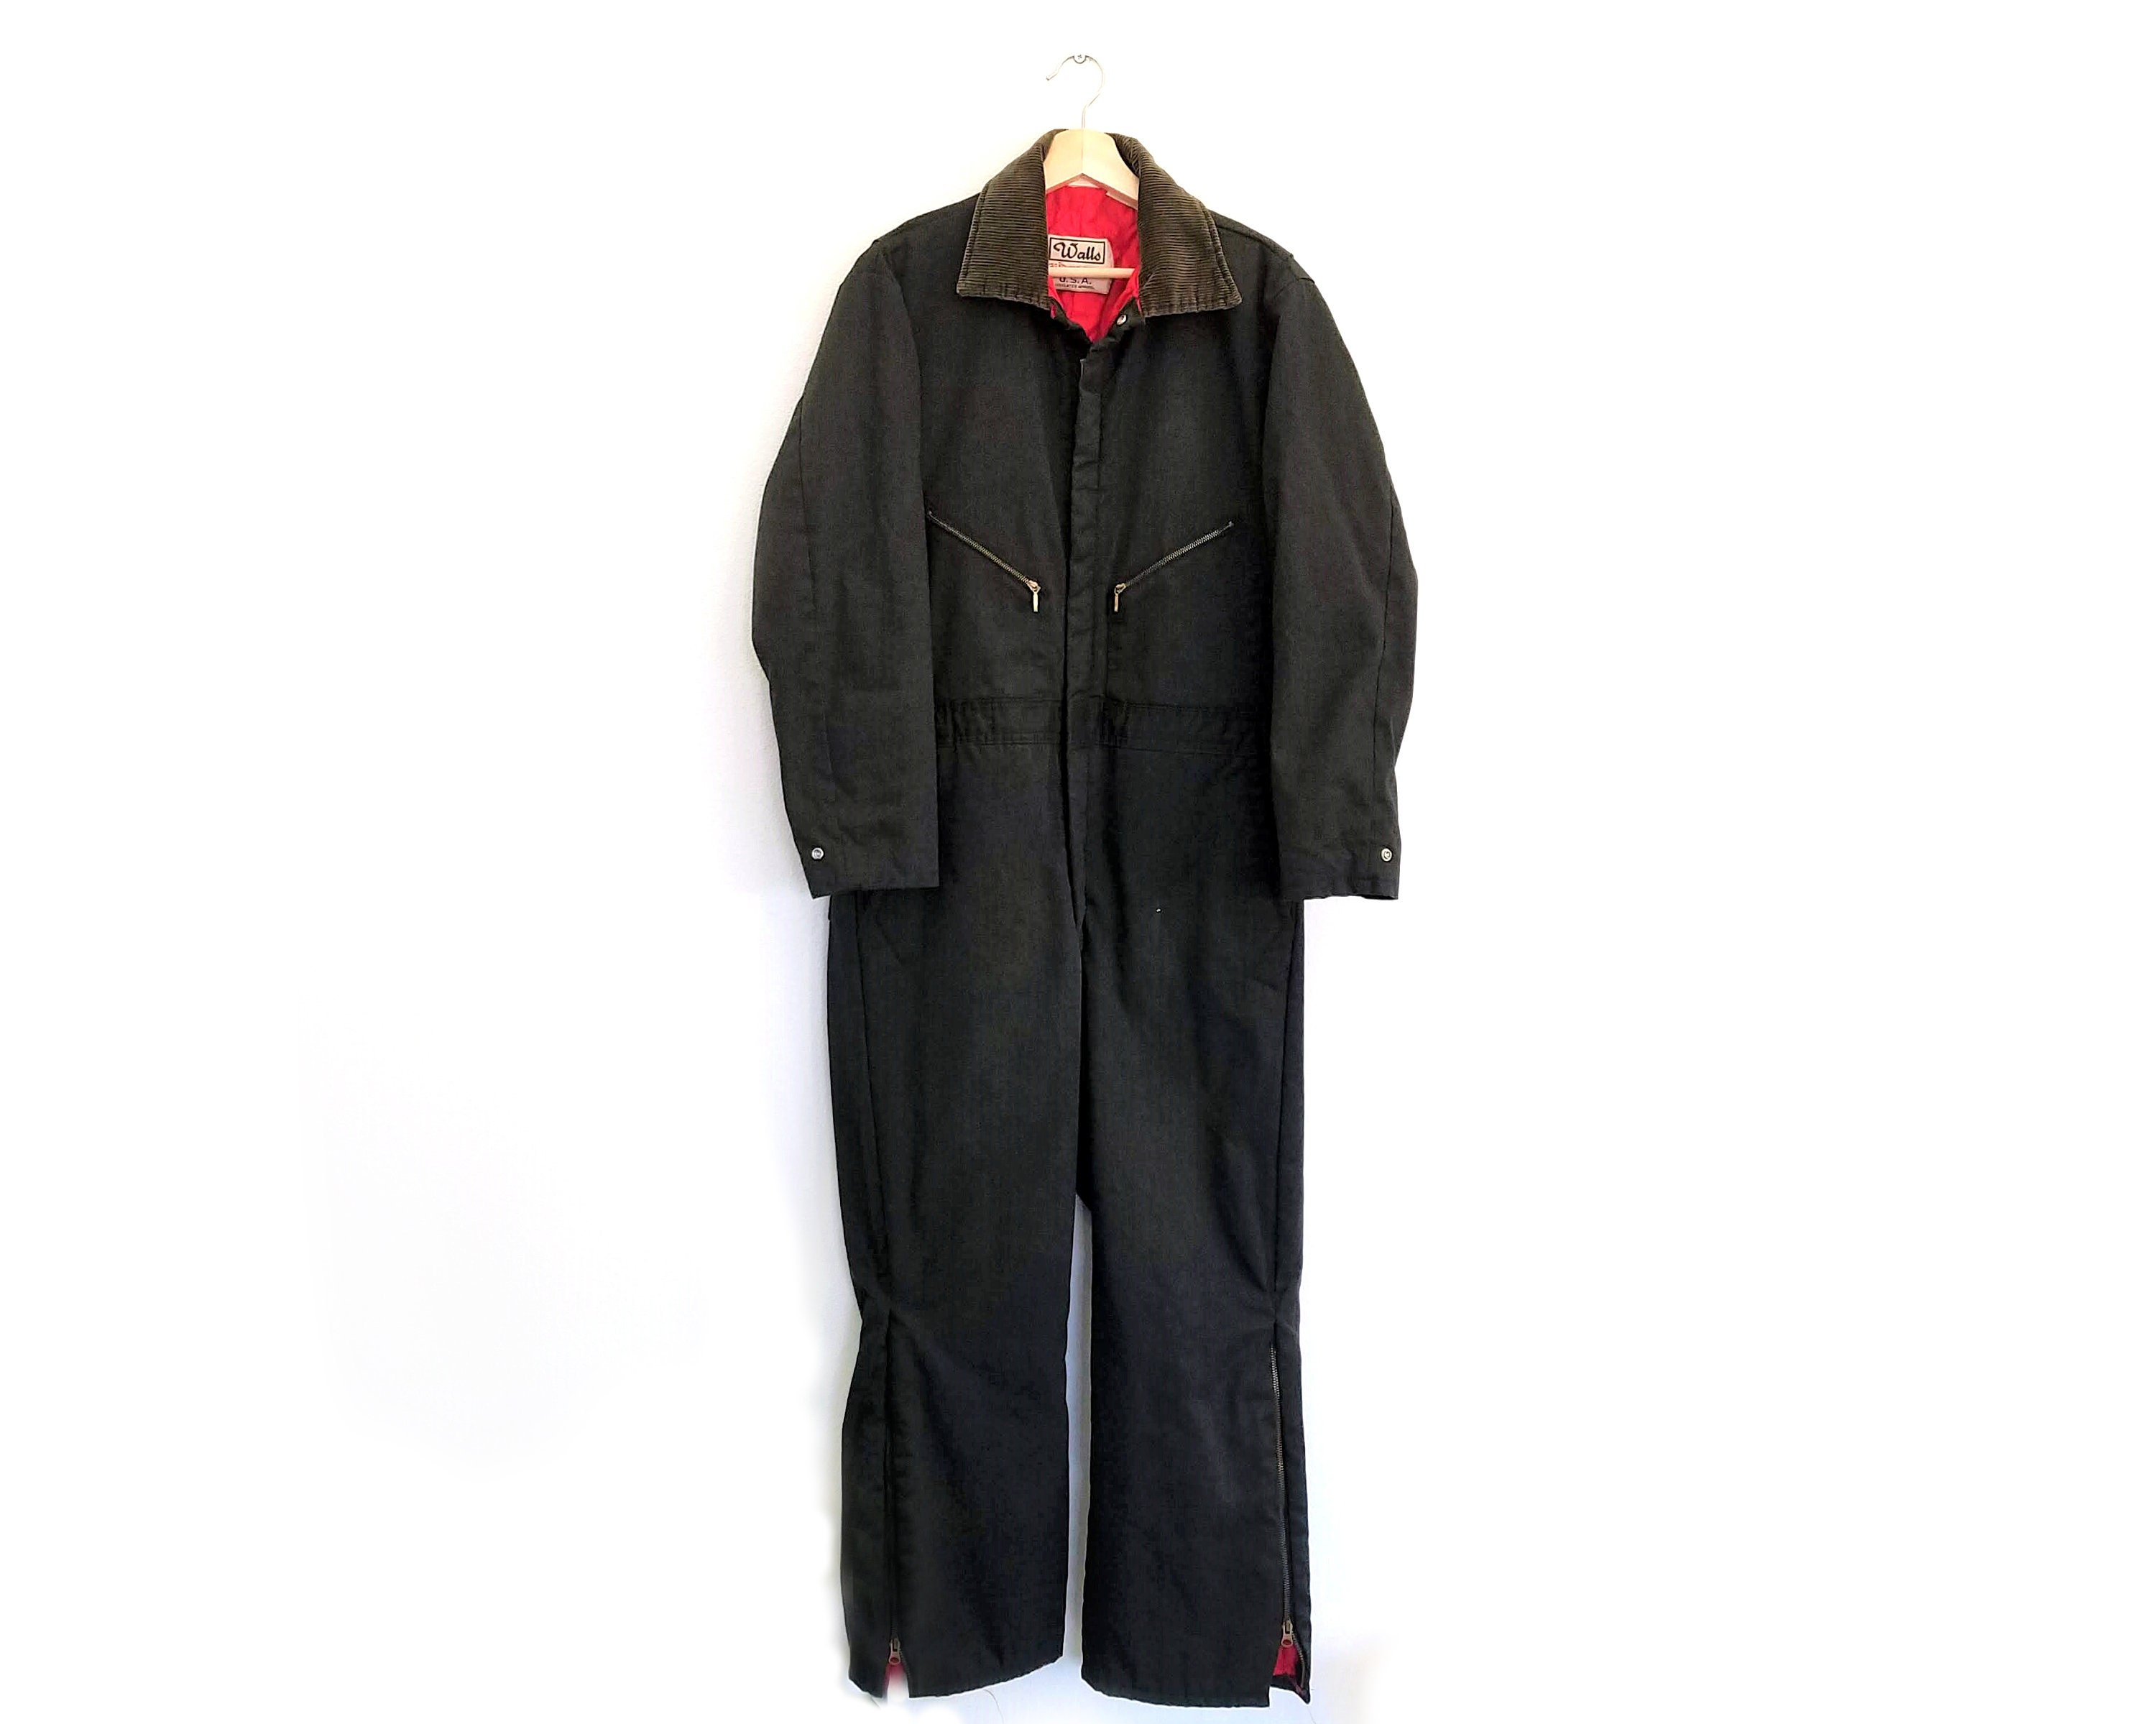 036a9a2aa4162 Vintage Walls Blizzard Pruf Insulated Coveralls / Large / Vintage Snow Suit  & Work Wear